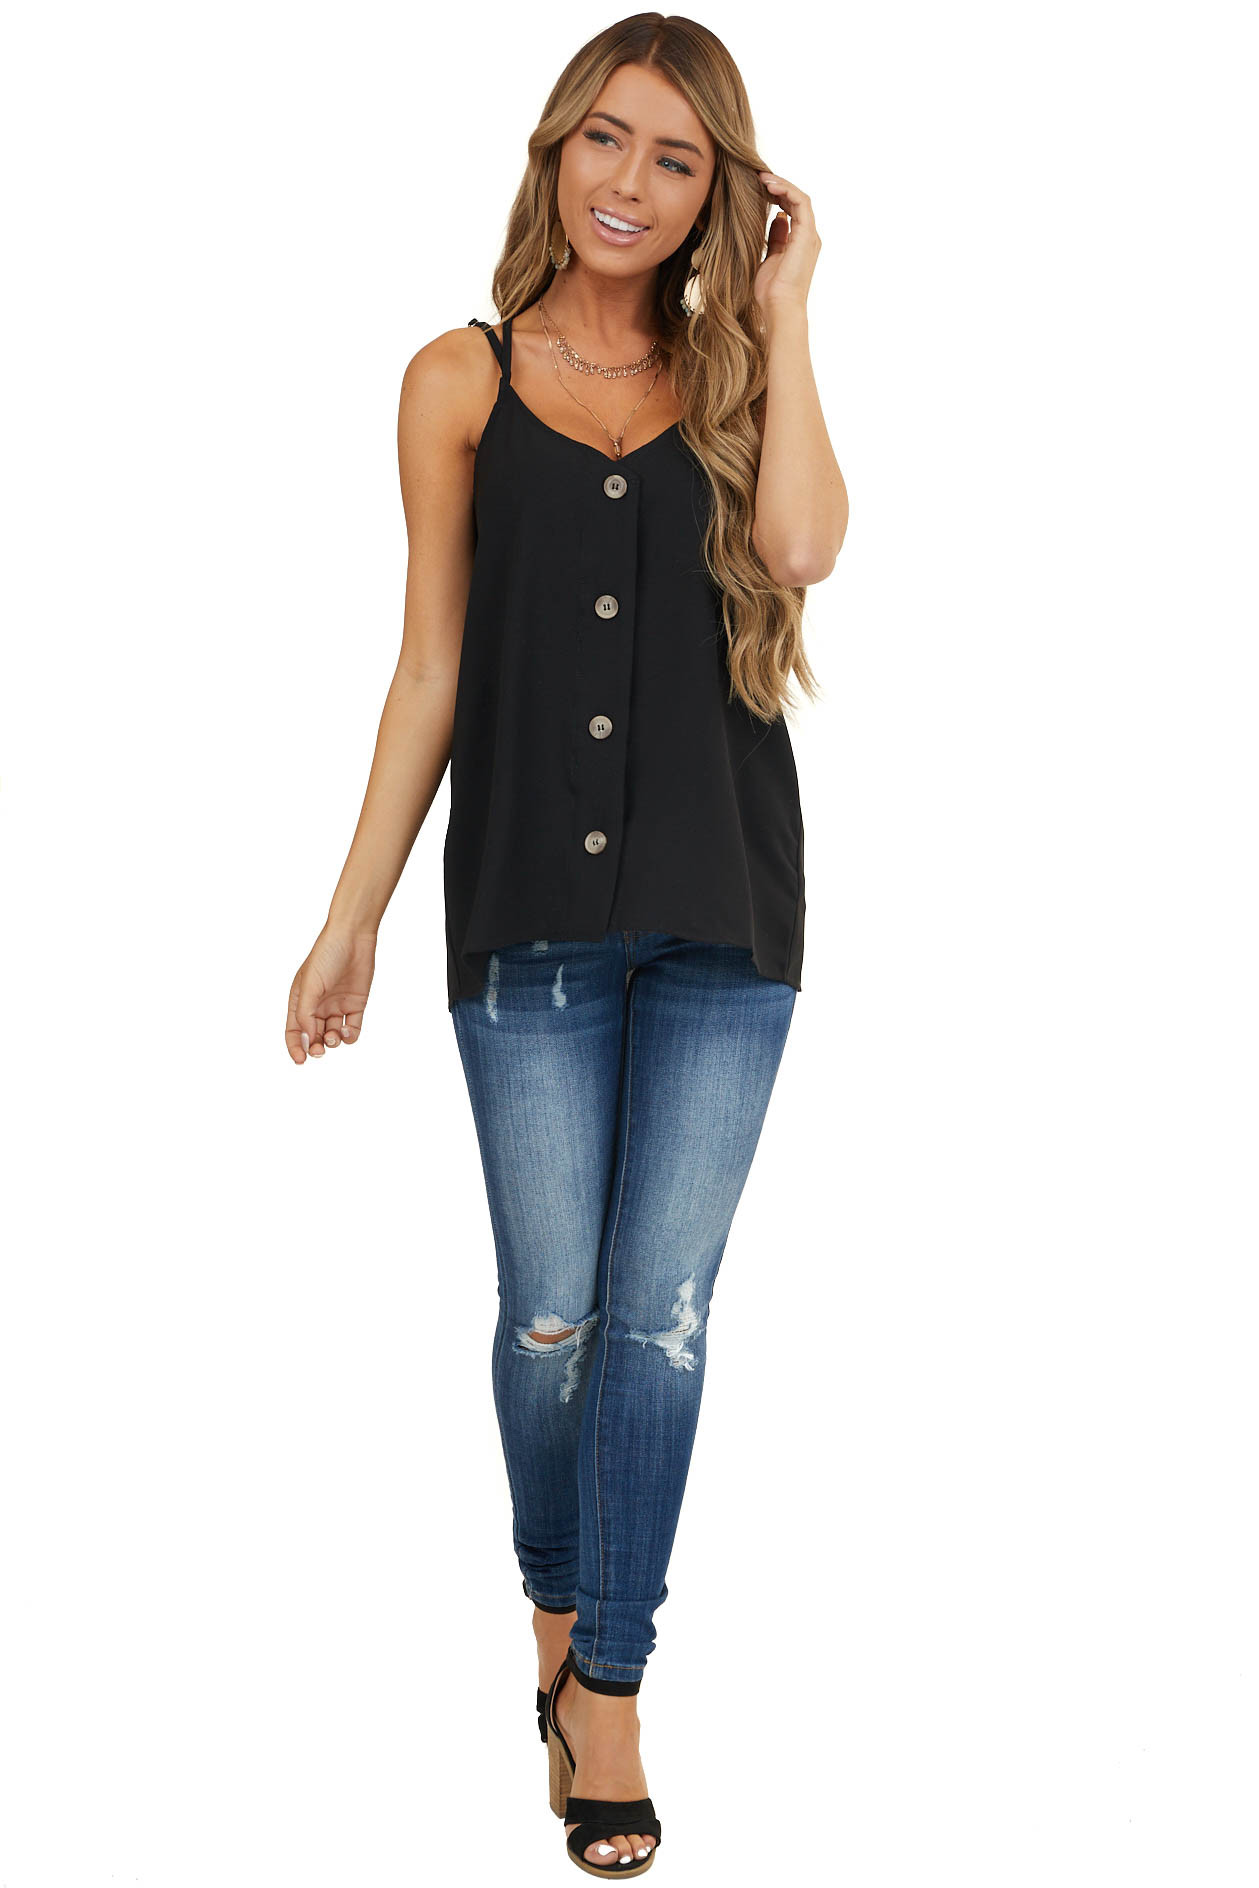 Black Button Up Tank Top with Criss Cross Straps